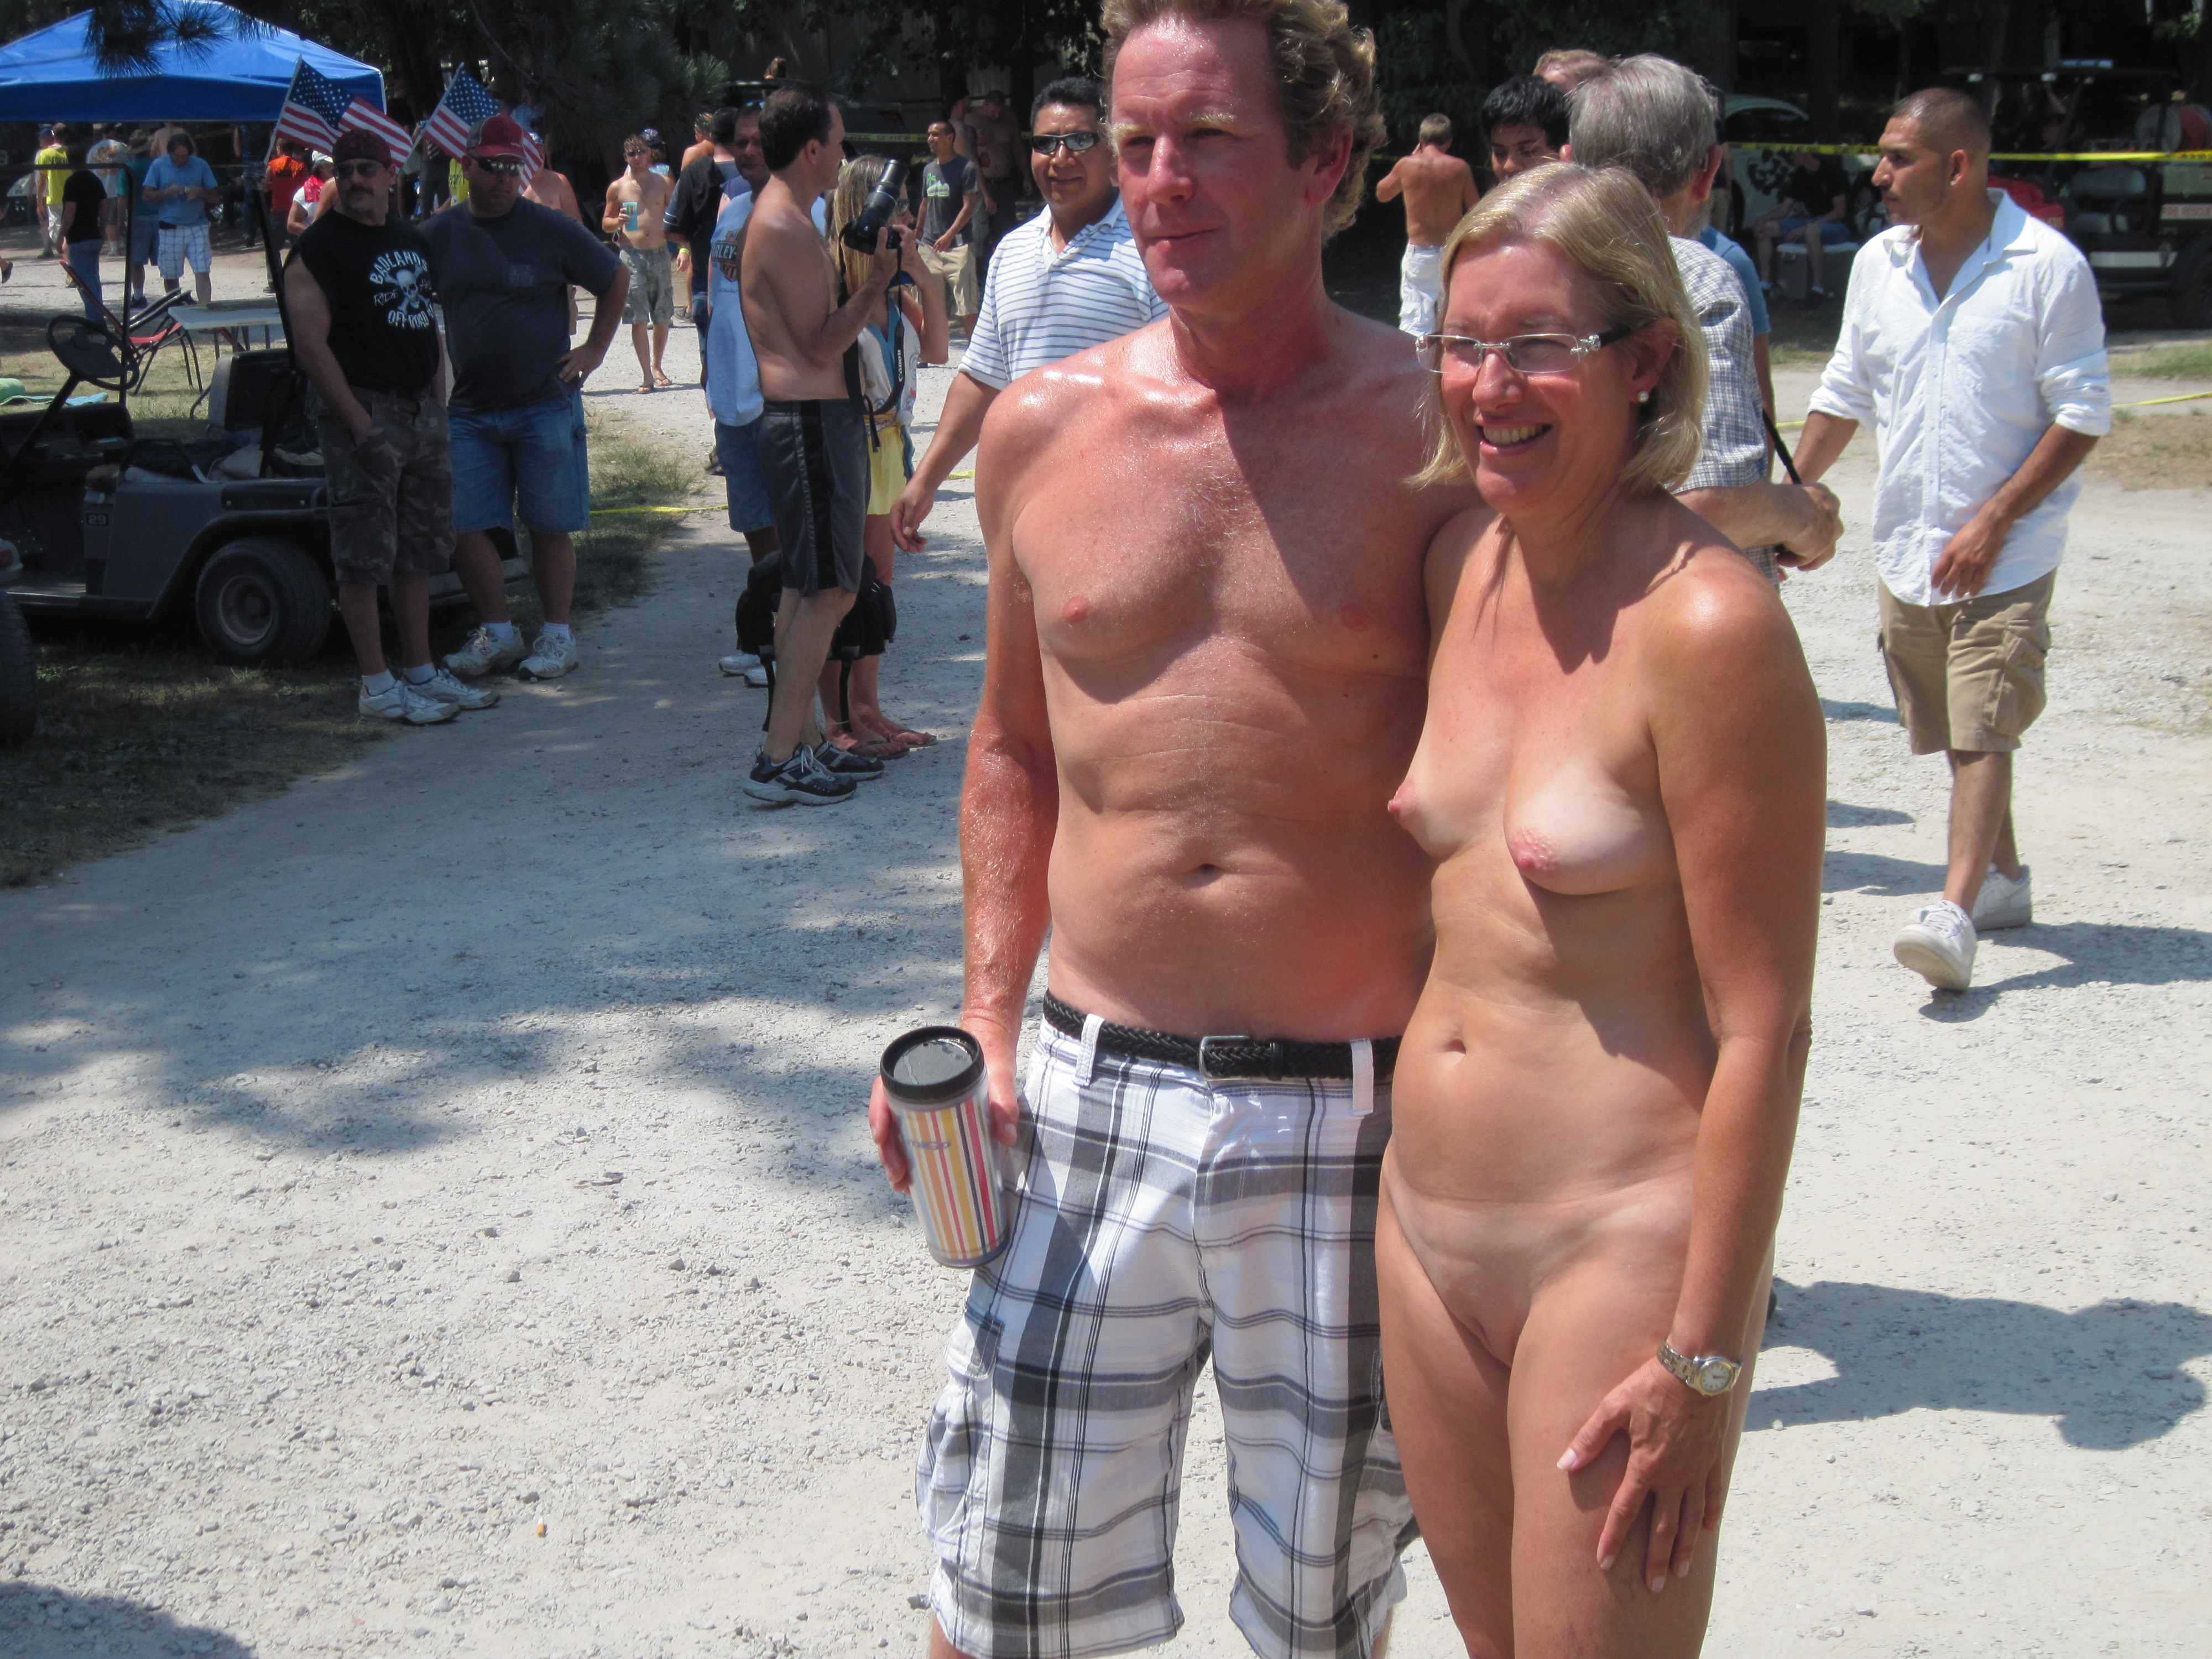 Looking at naked man clothed women